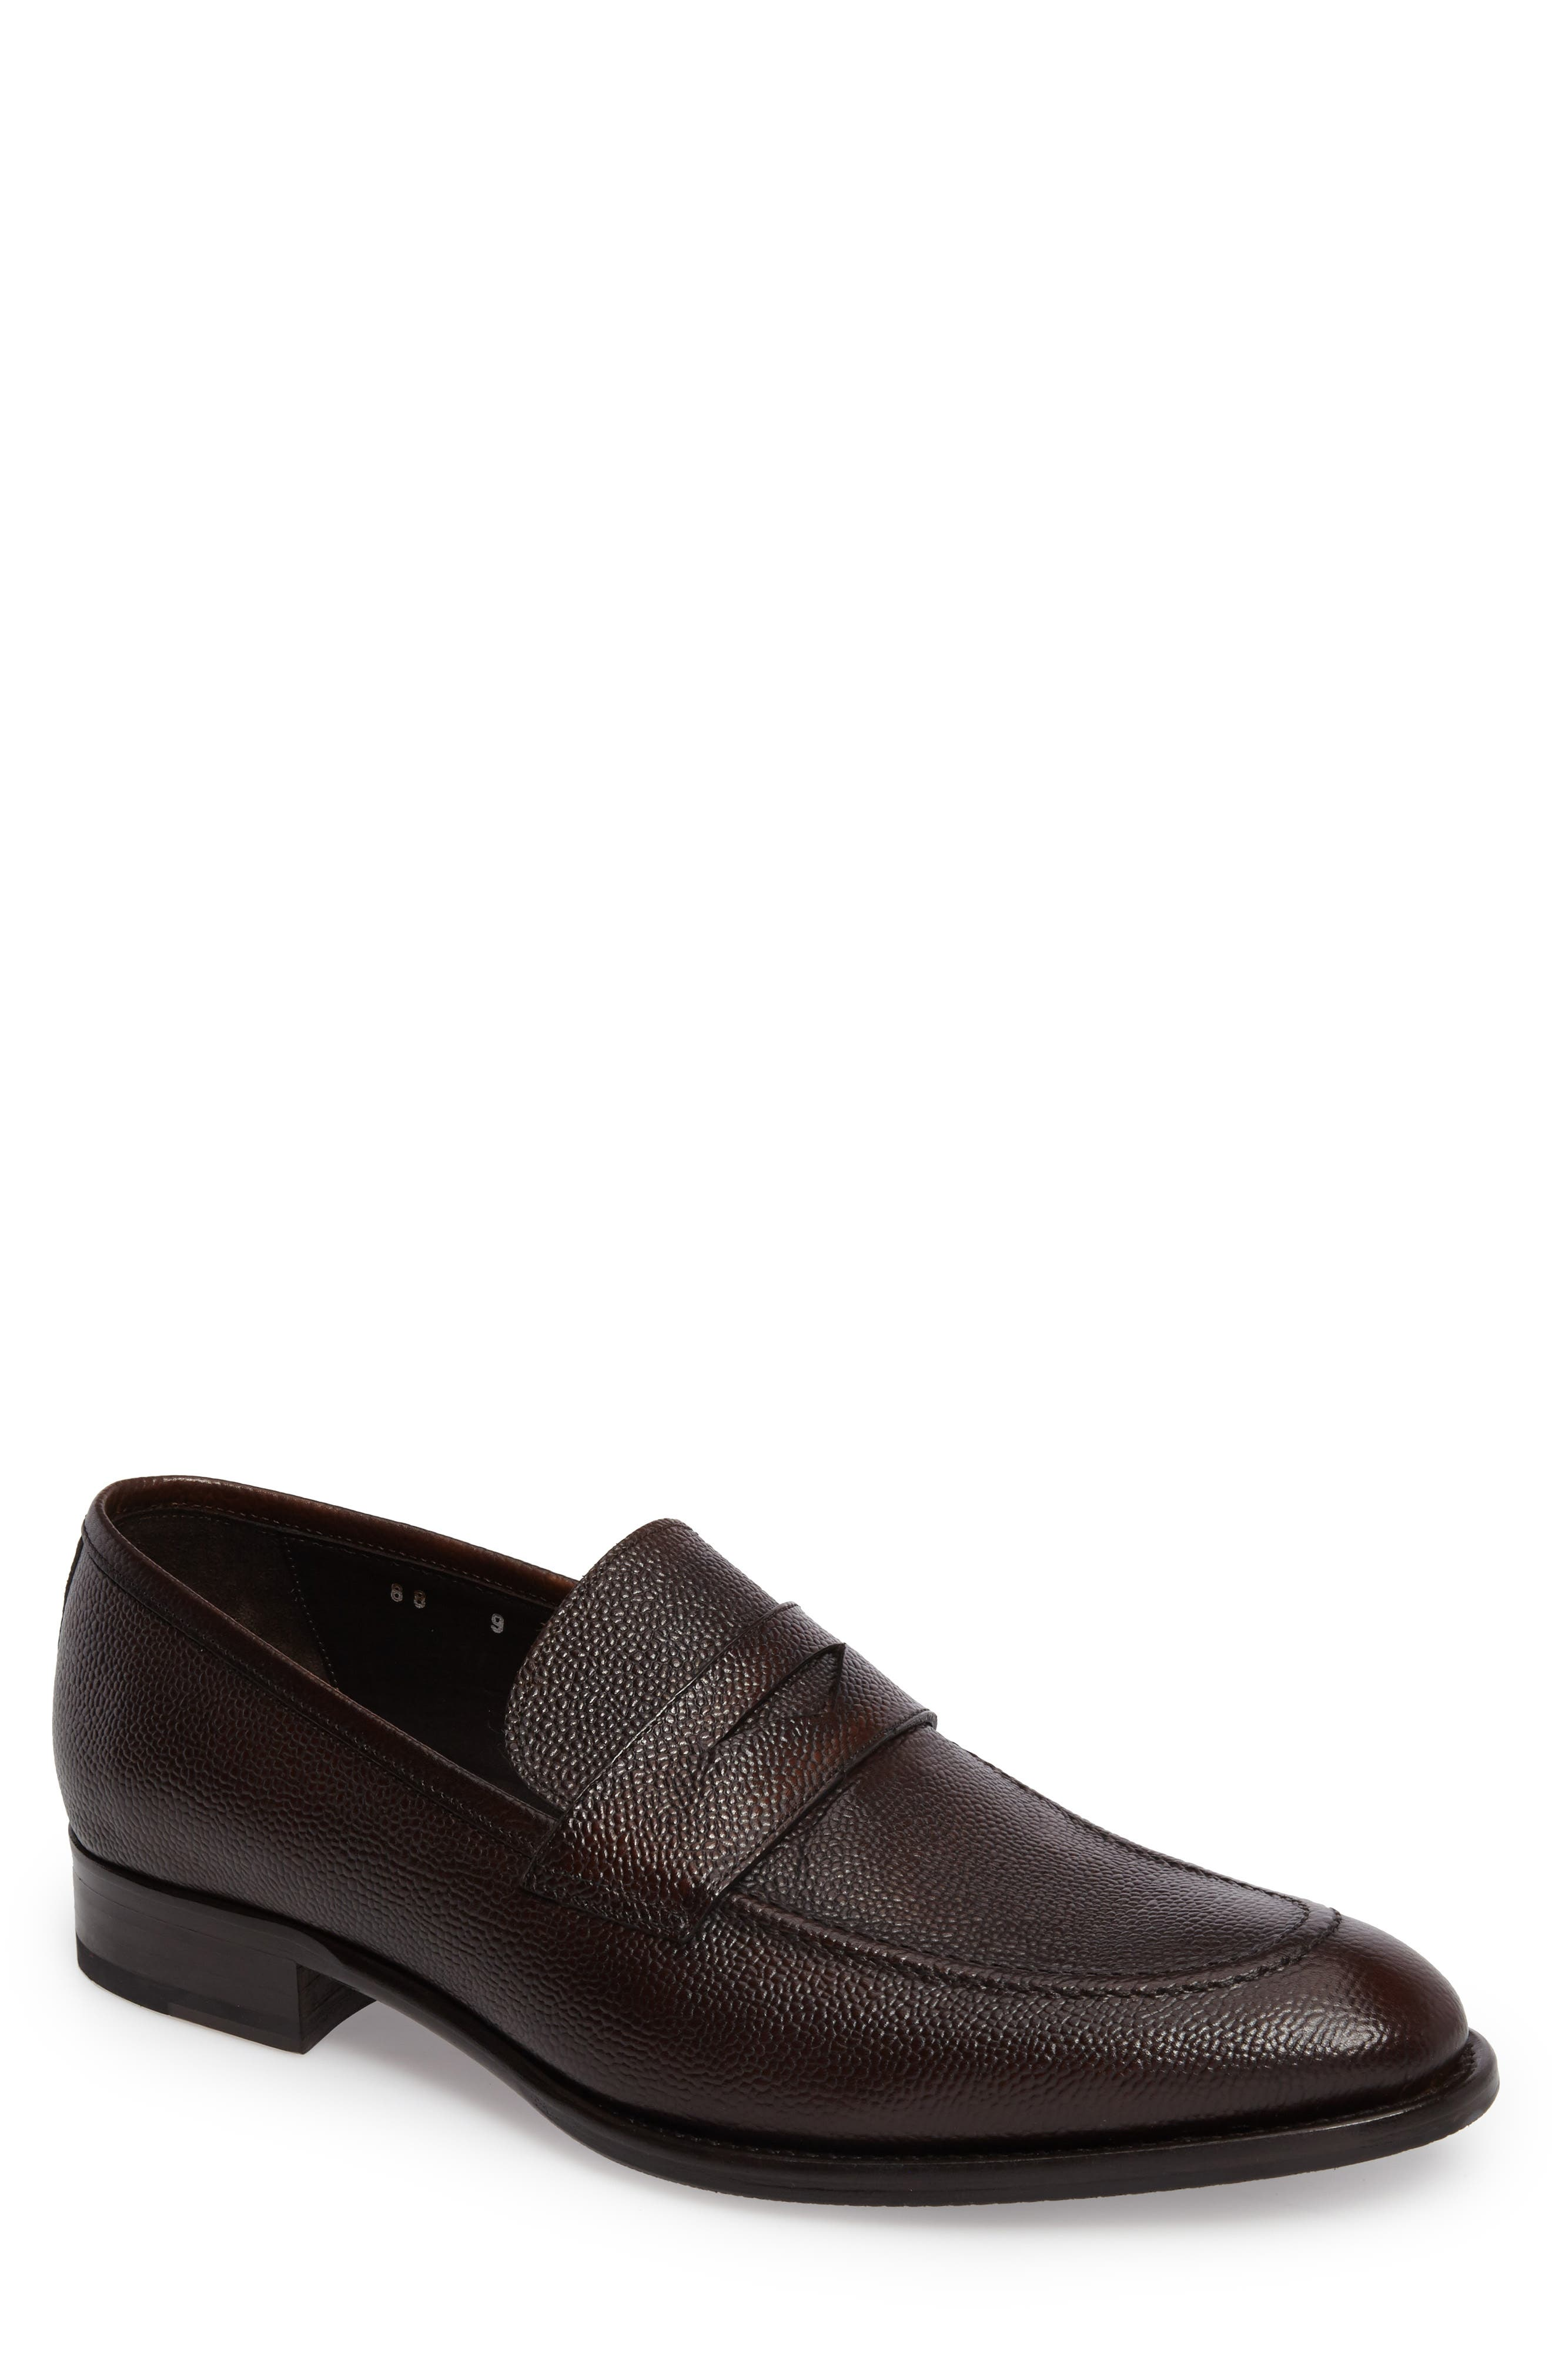 James Penny Loafer,                             Main thumbnail 1, color,                             Brown Leather